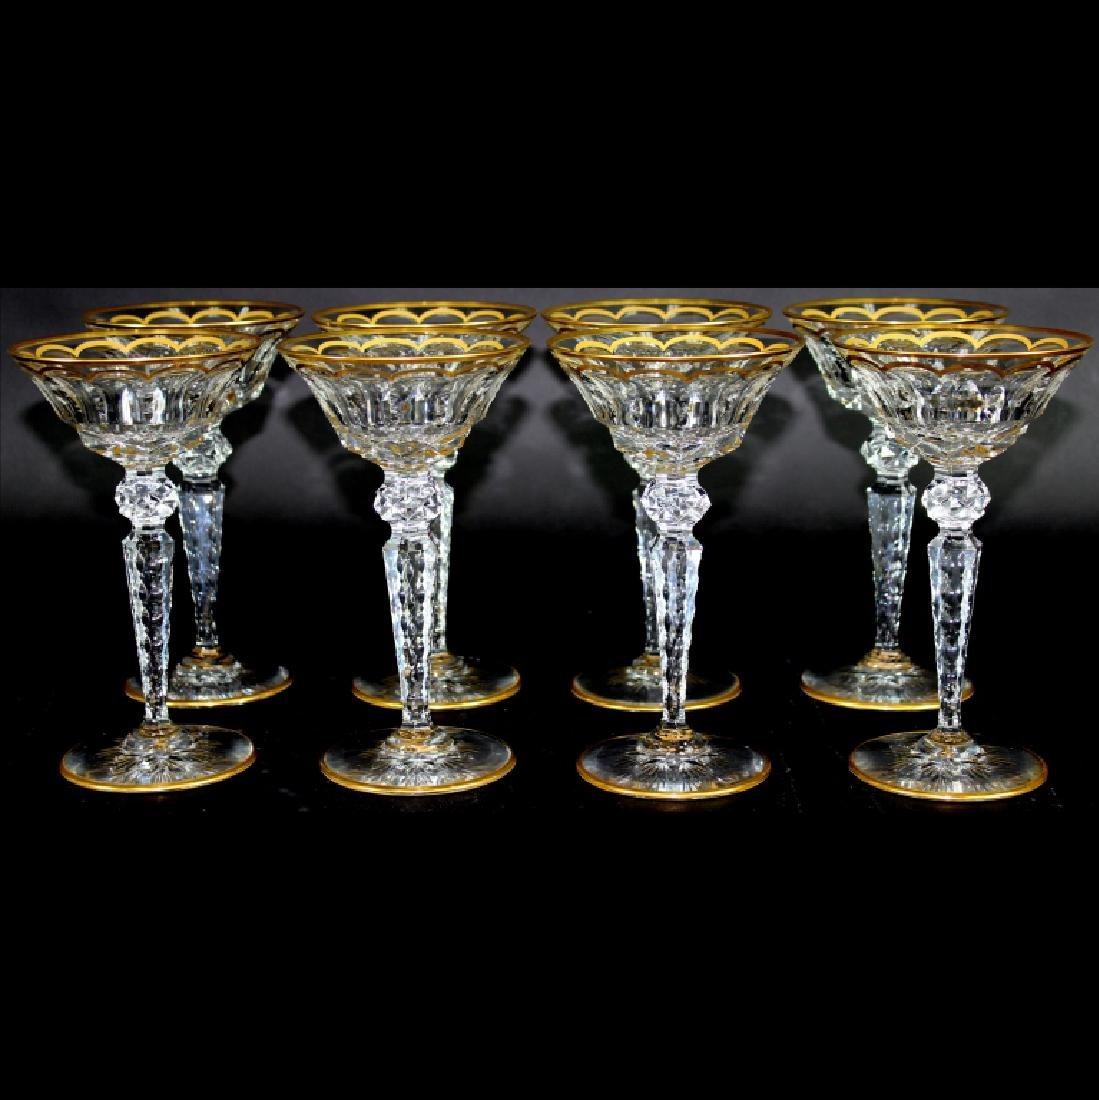 (8) EIGHT ST. LOUIS GLASS EXCELLENCE GOBLETS